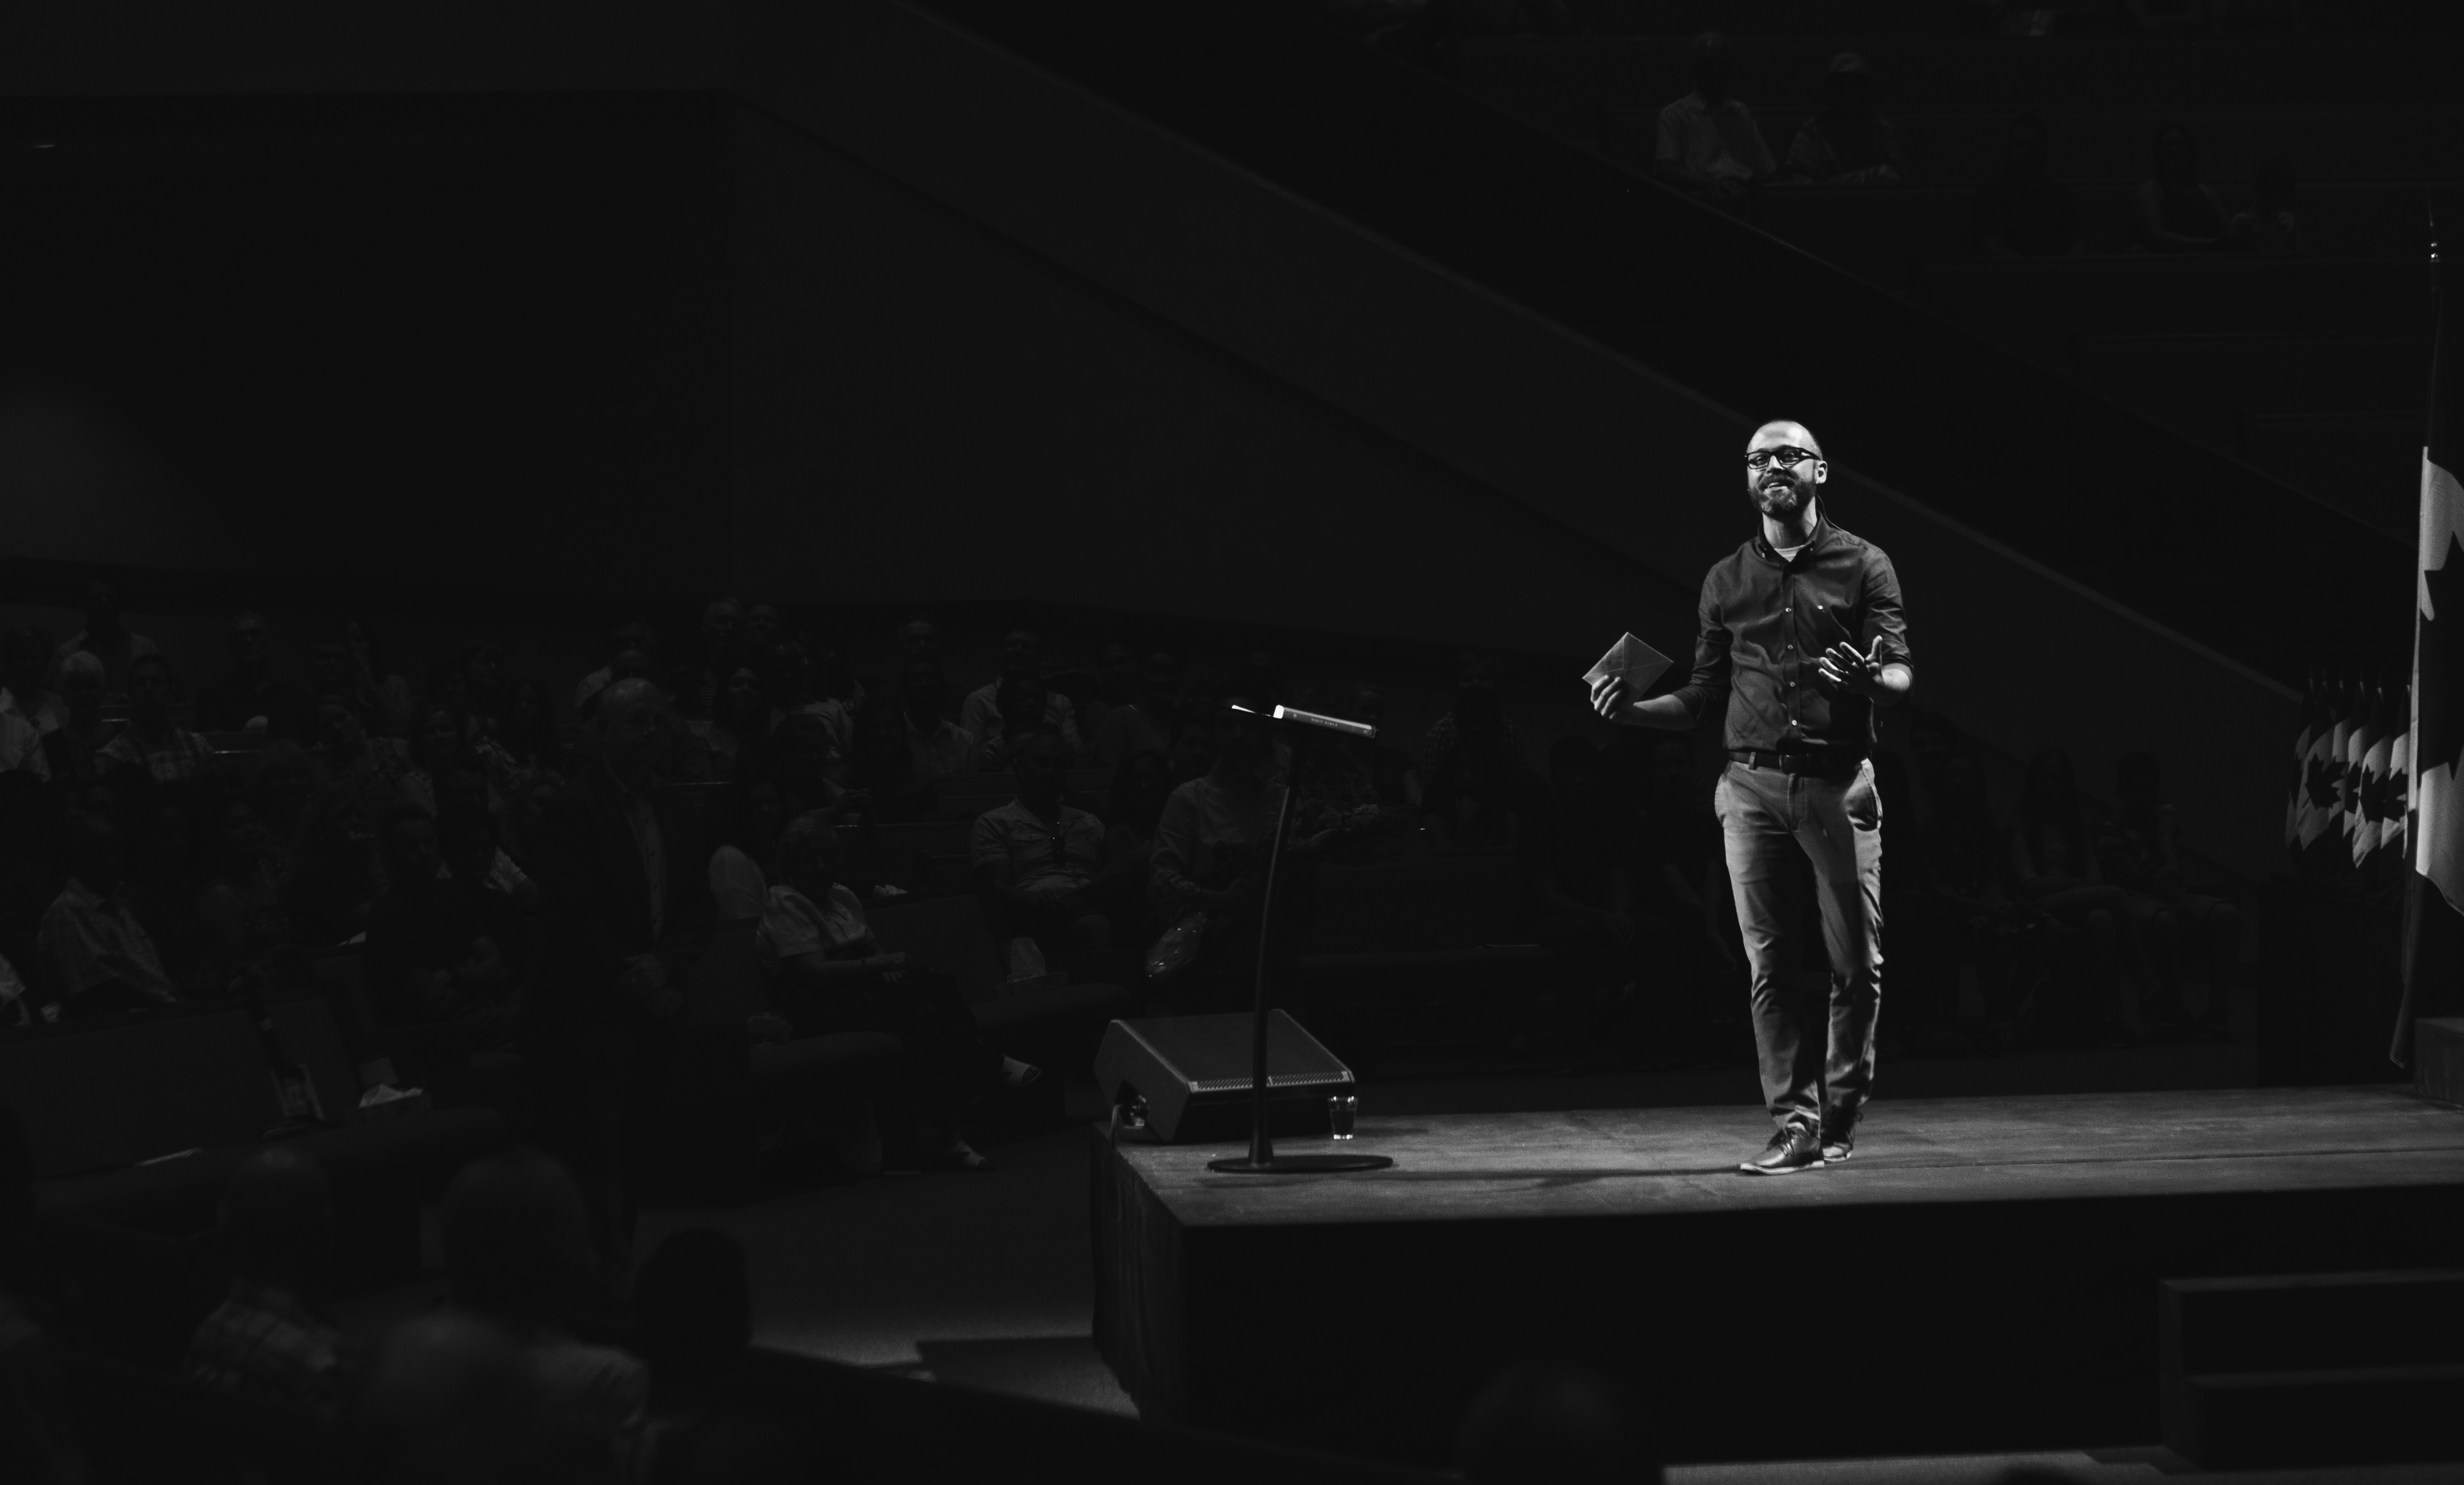 grayscale photo of man walking on platform stage